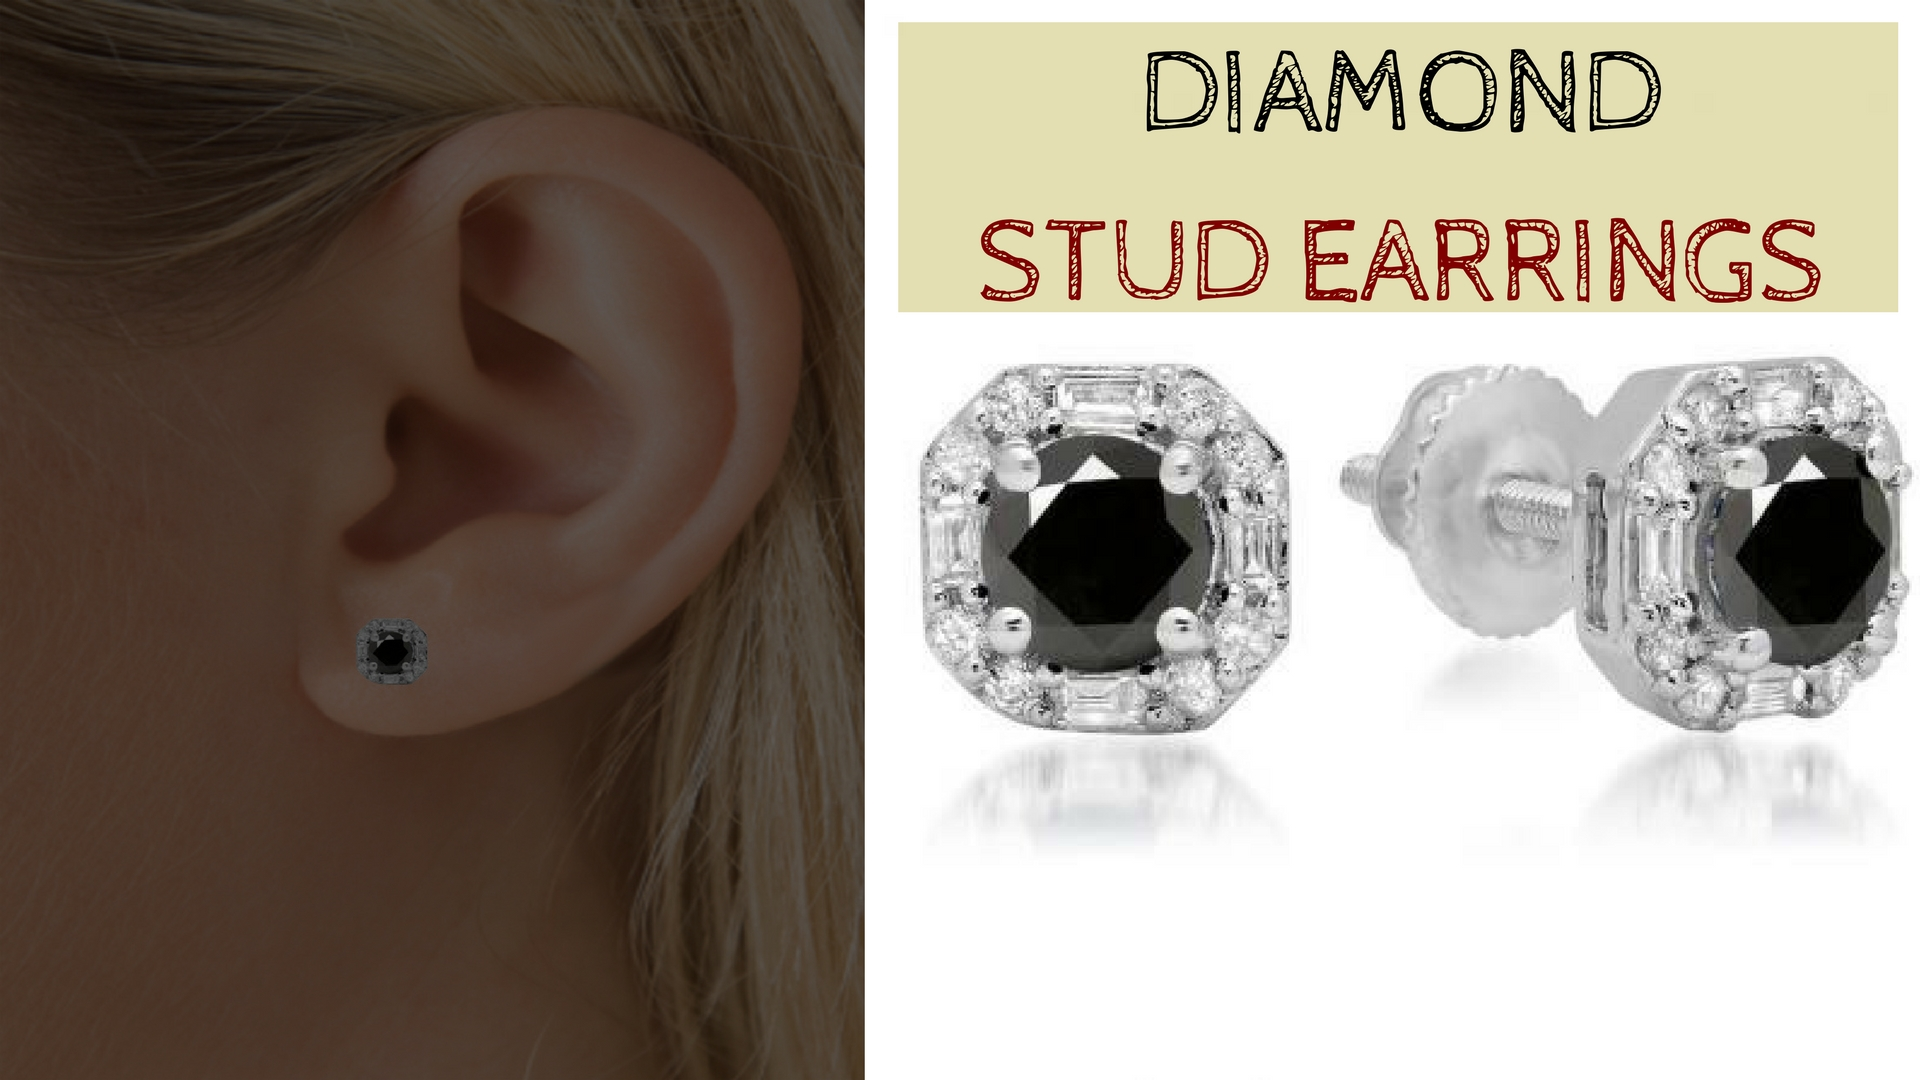 Add touch of elegance to your look with diamond stud earrings